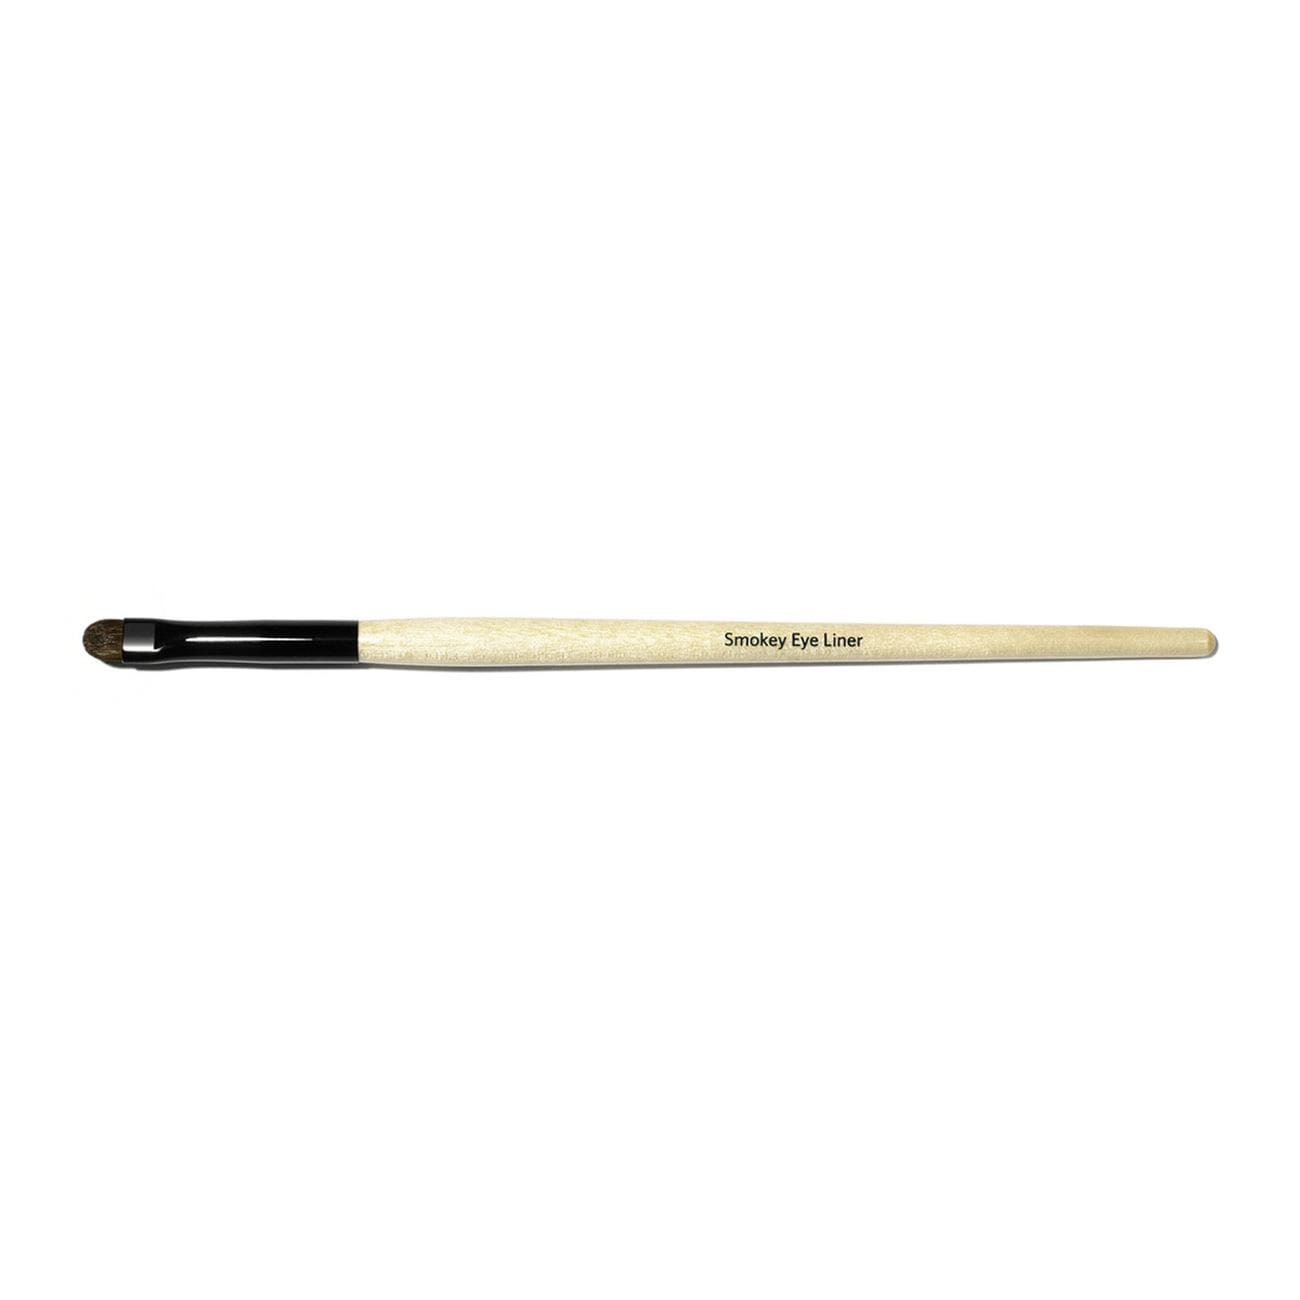 Smokey Eye Liner Brush